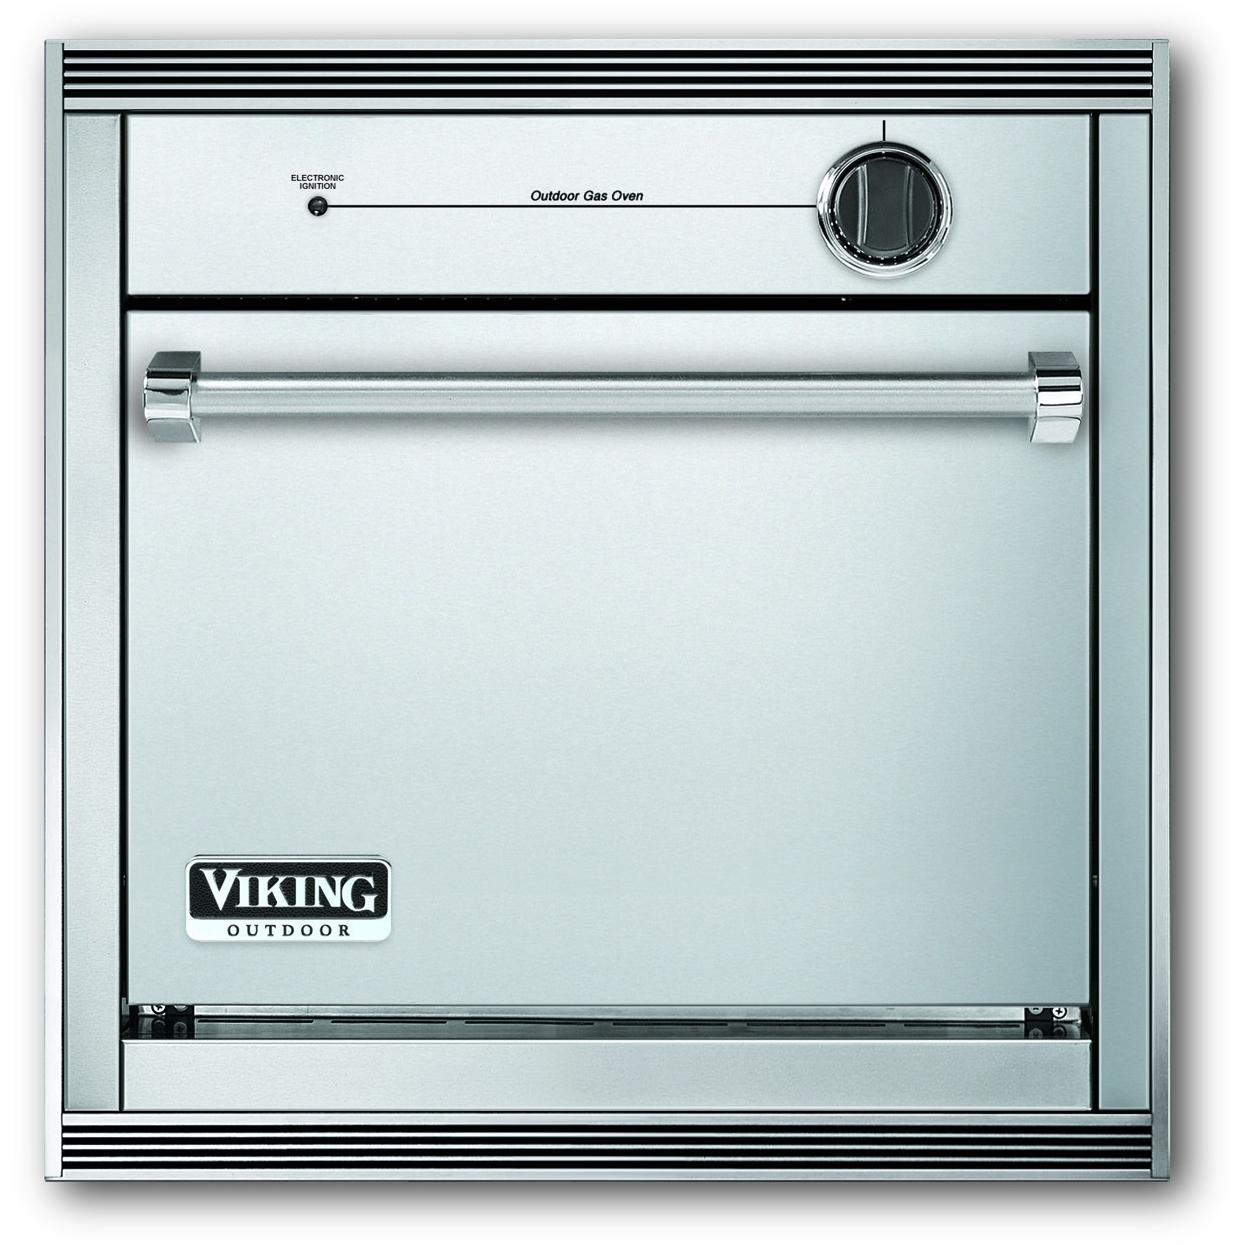 Viking VGSO260TLSS 26-Inch Built-In Propane Outdoor Oven